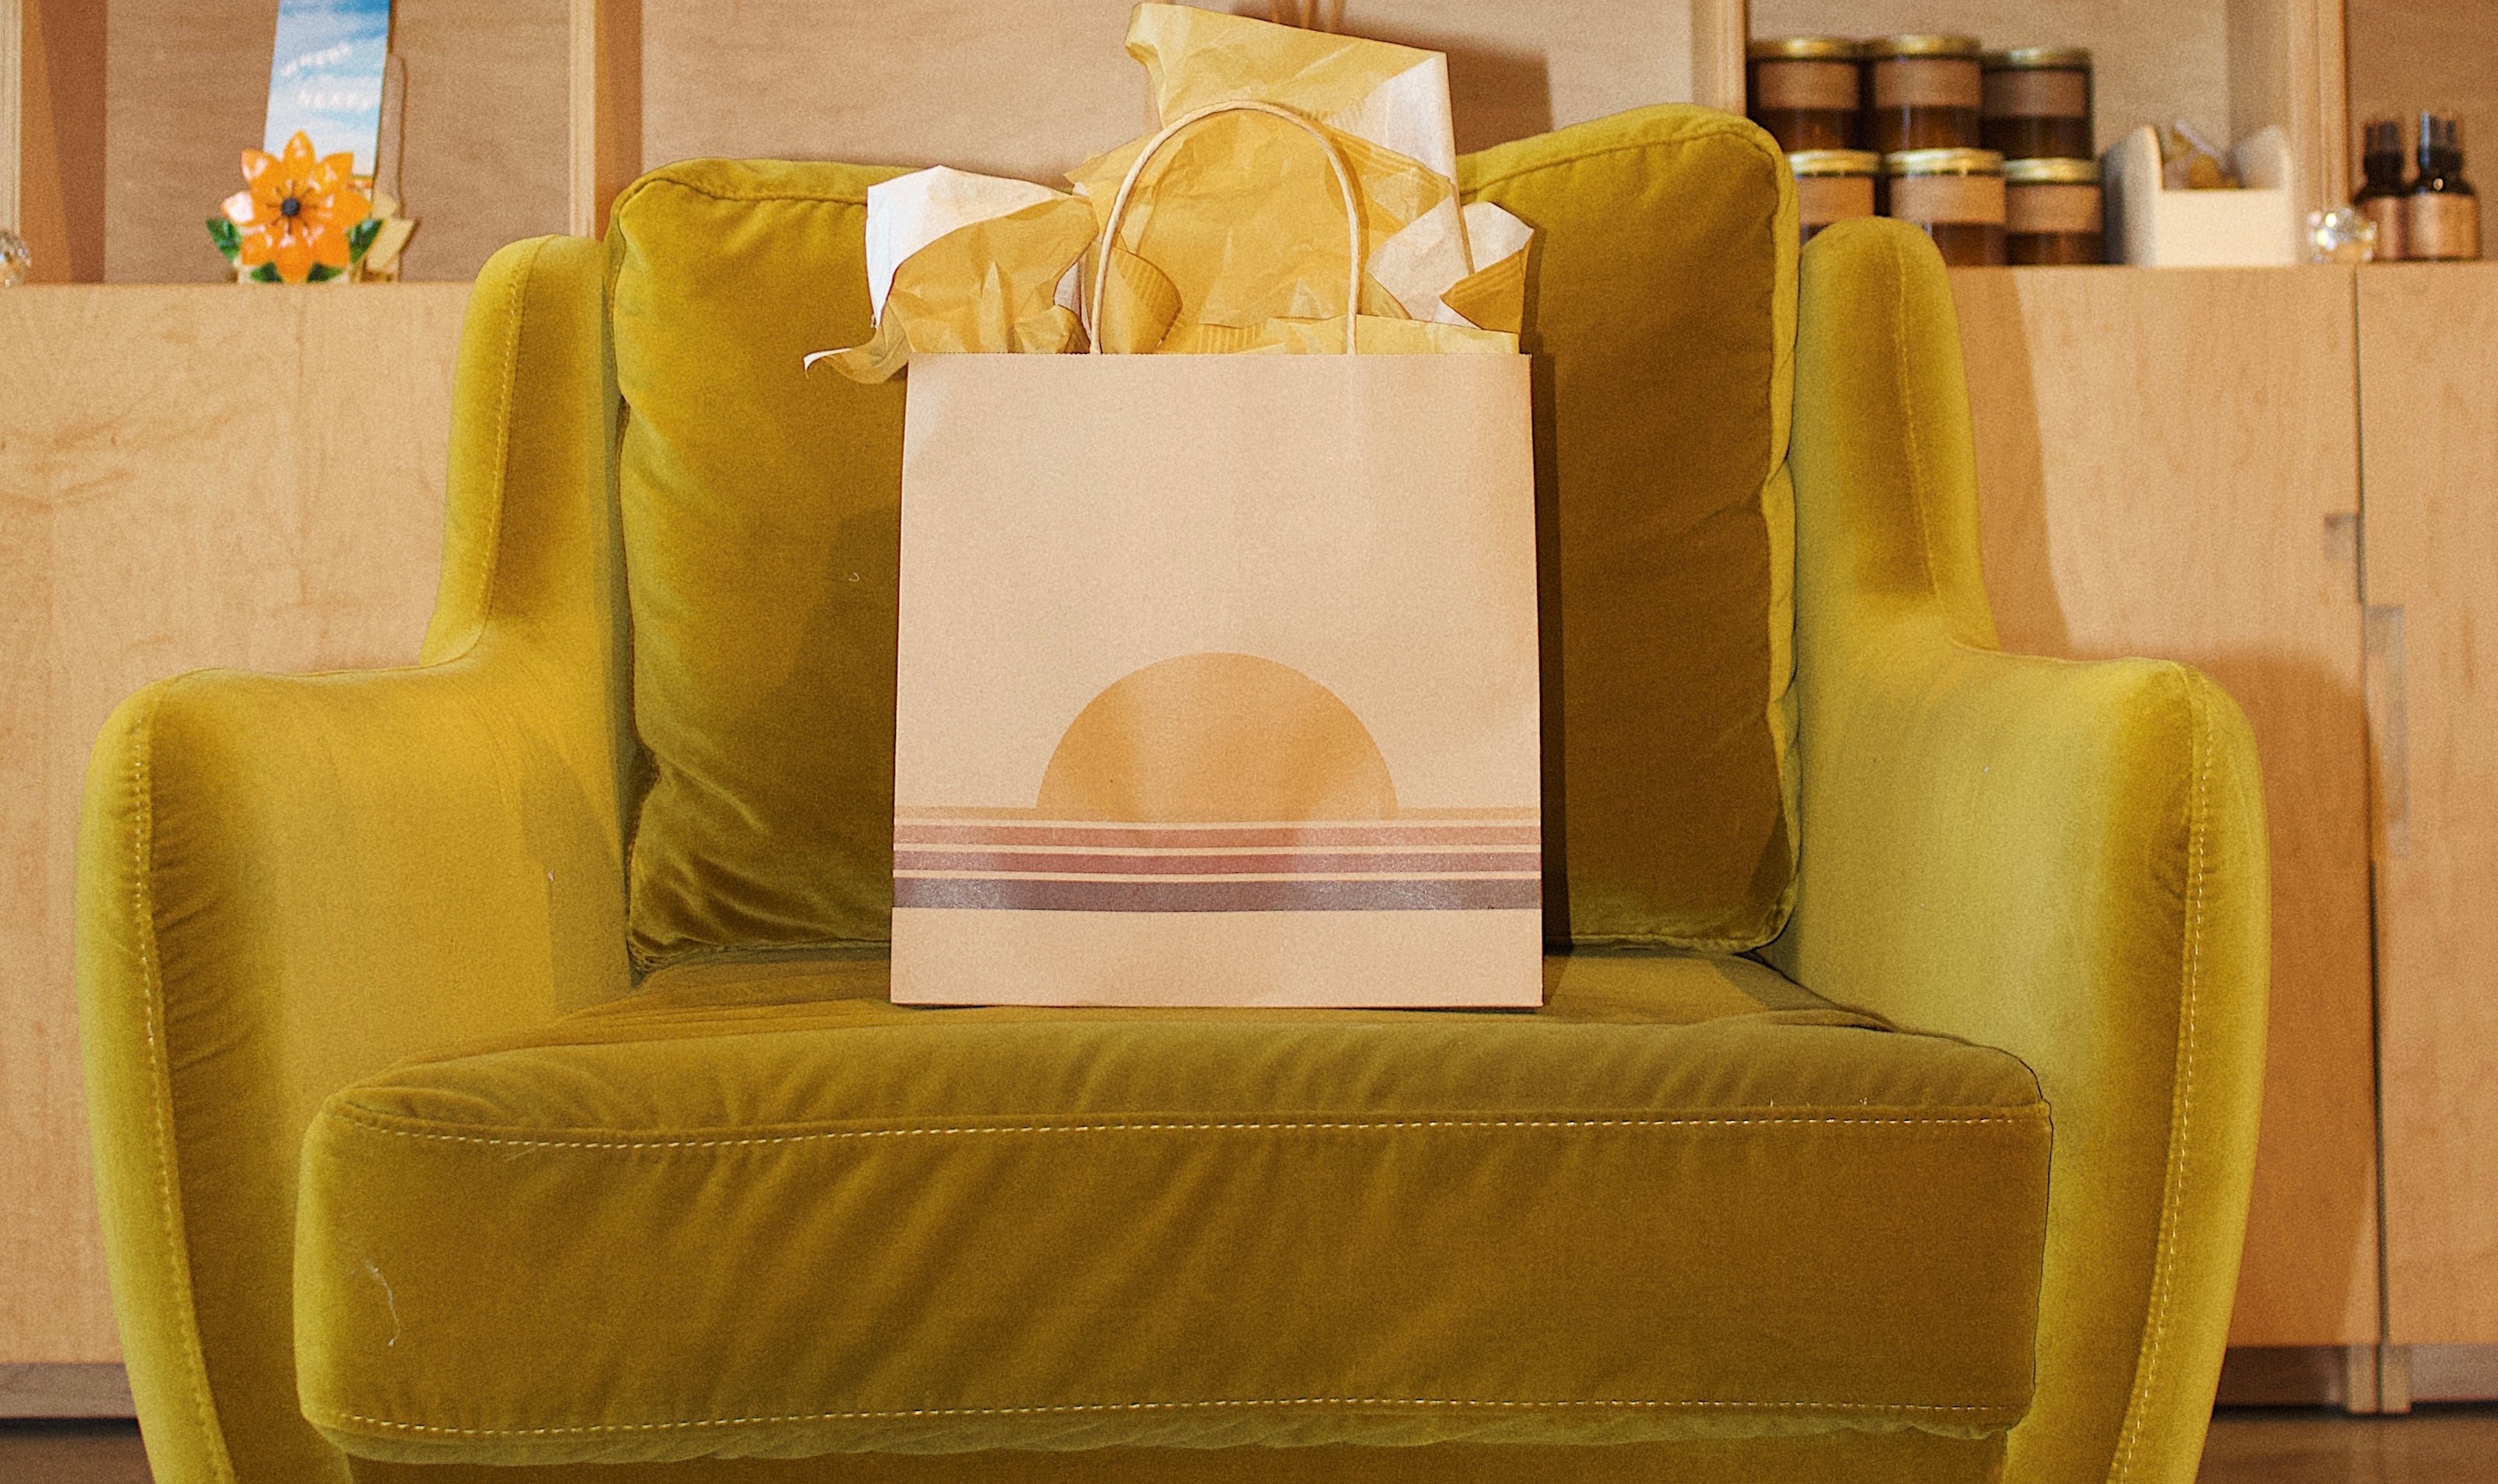 Yellow velvet armchair with P.F. Candle Co. branded gift bag in seat